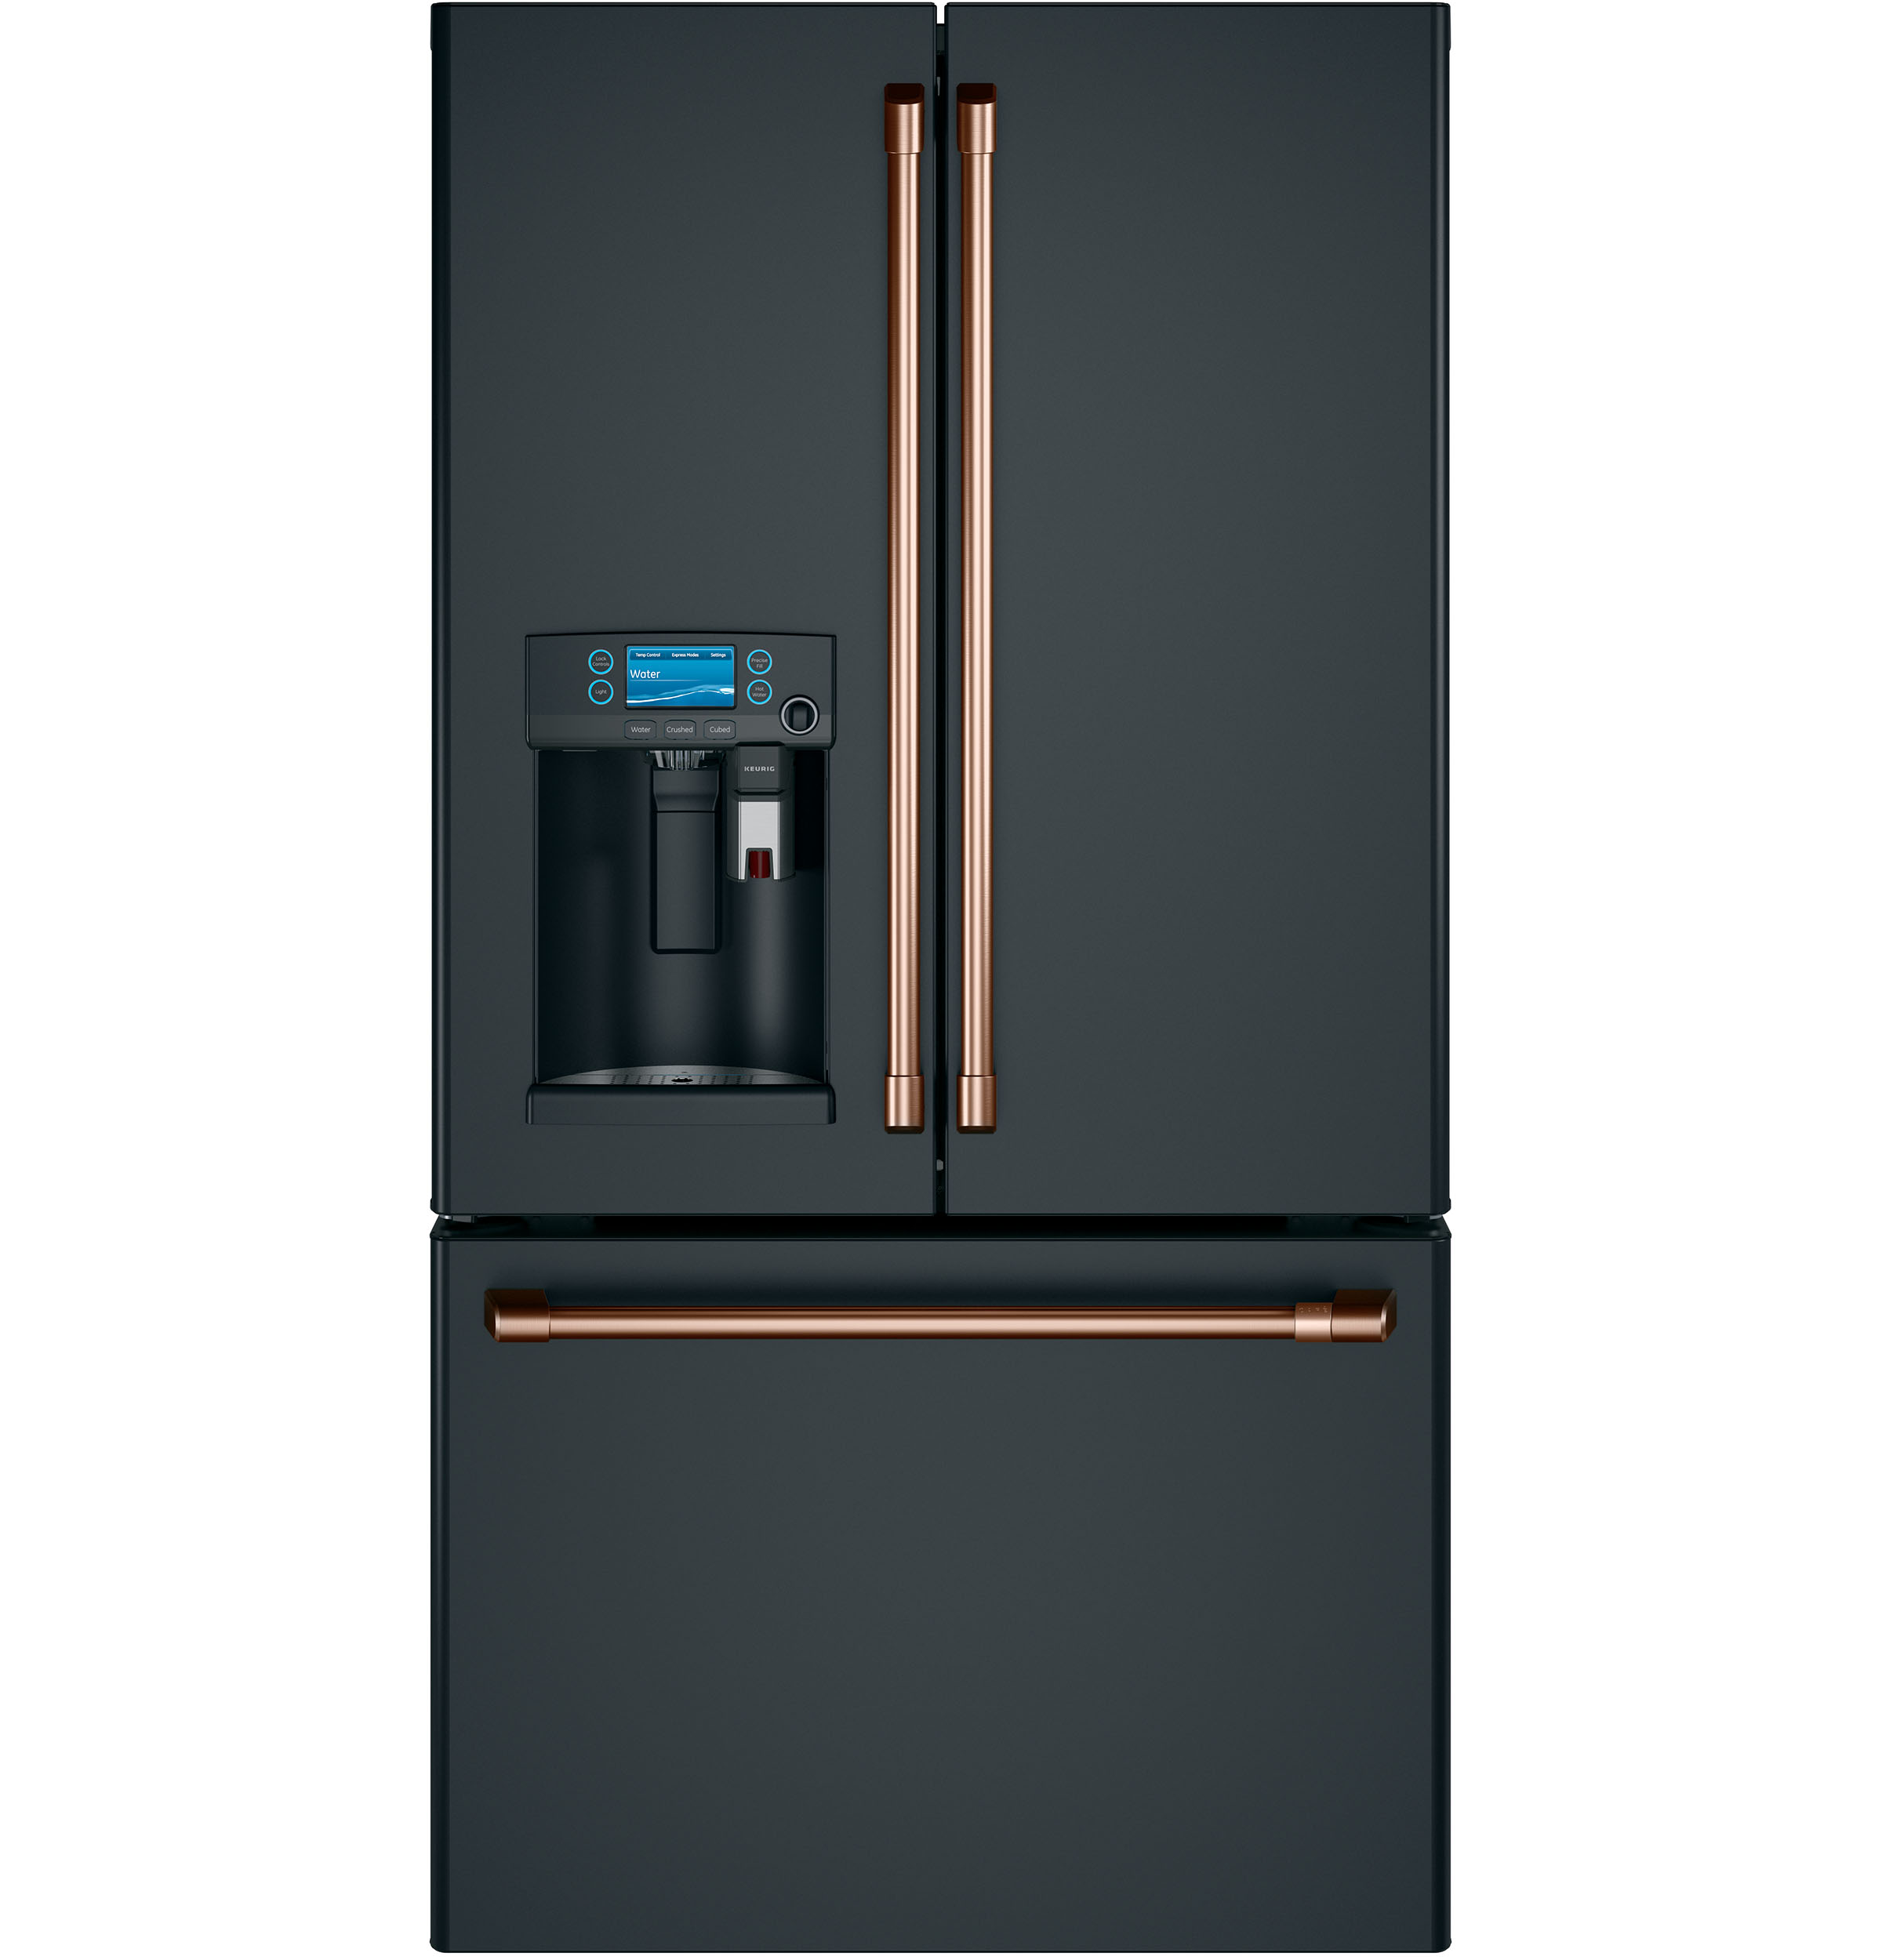 Model: CYE22UP3MD1 | Café™ ENERGY STAR® 22.2 Cu. Ft. Counter-Depth French-Door Refrigerator with Keurig® K-Cup® Brewing System